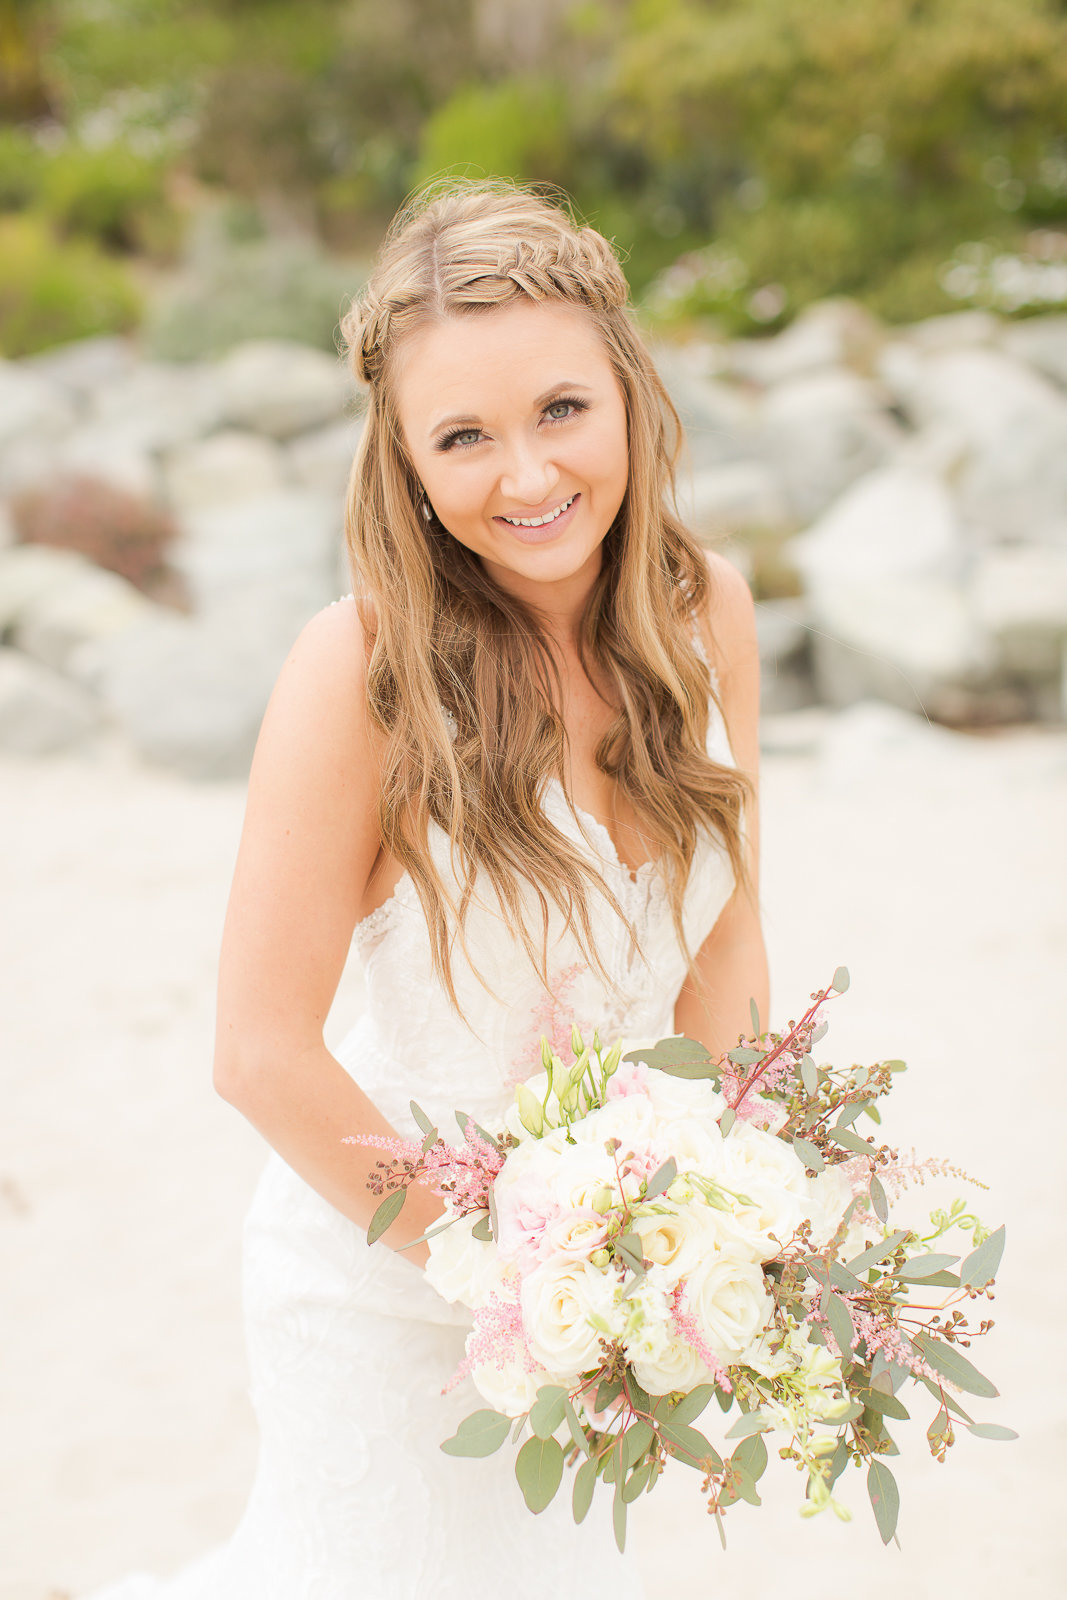 bride with bouquet nature outdoor  wedding colorado wedding destination wedding beach wedding romantic